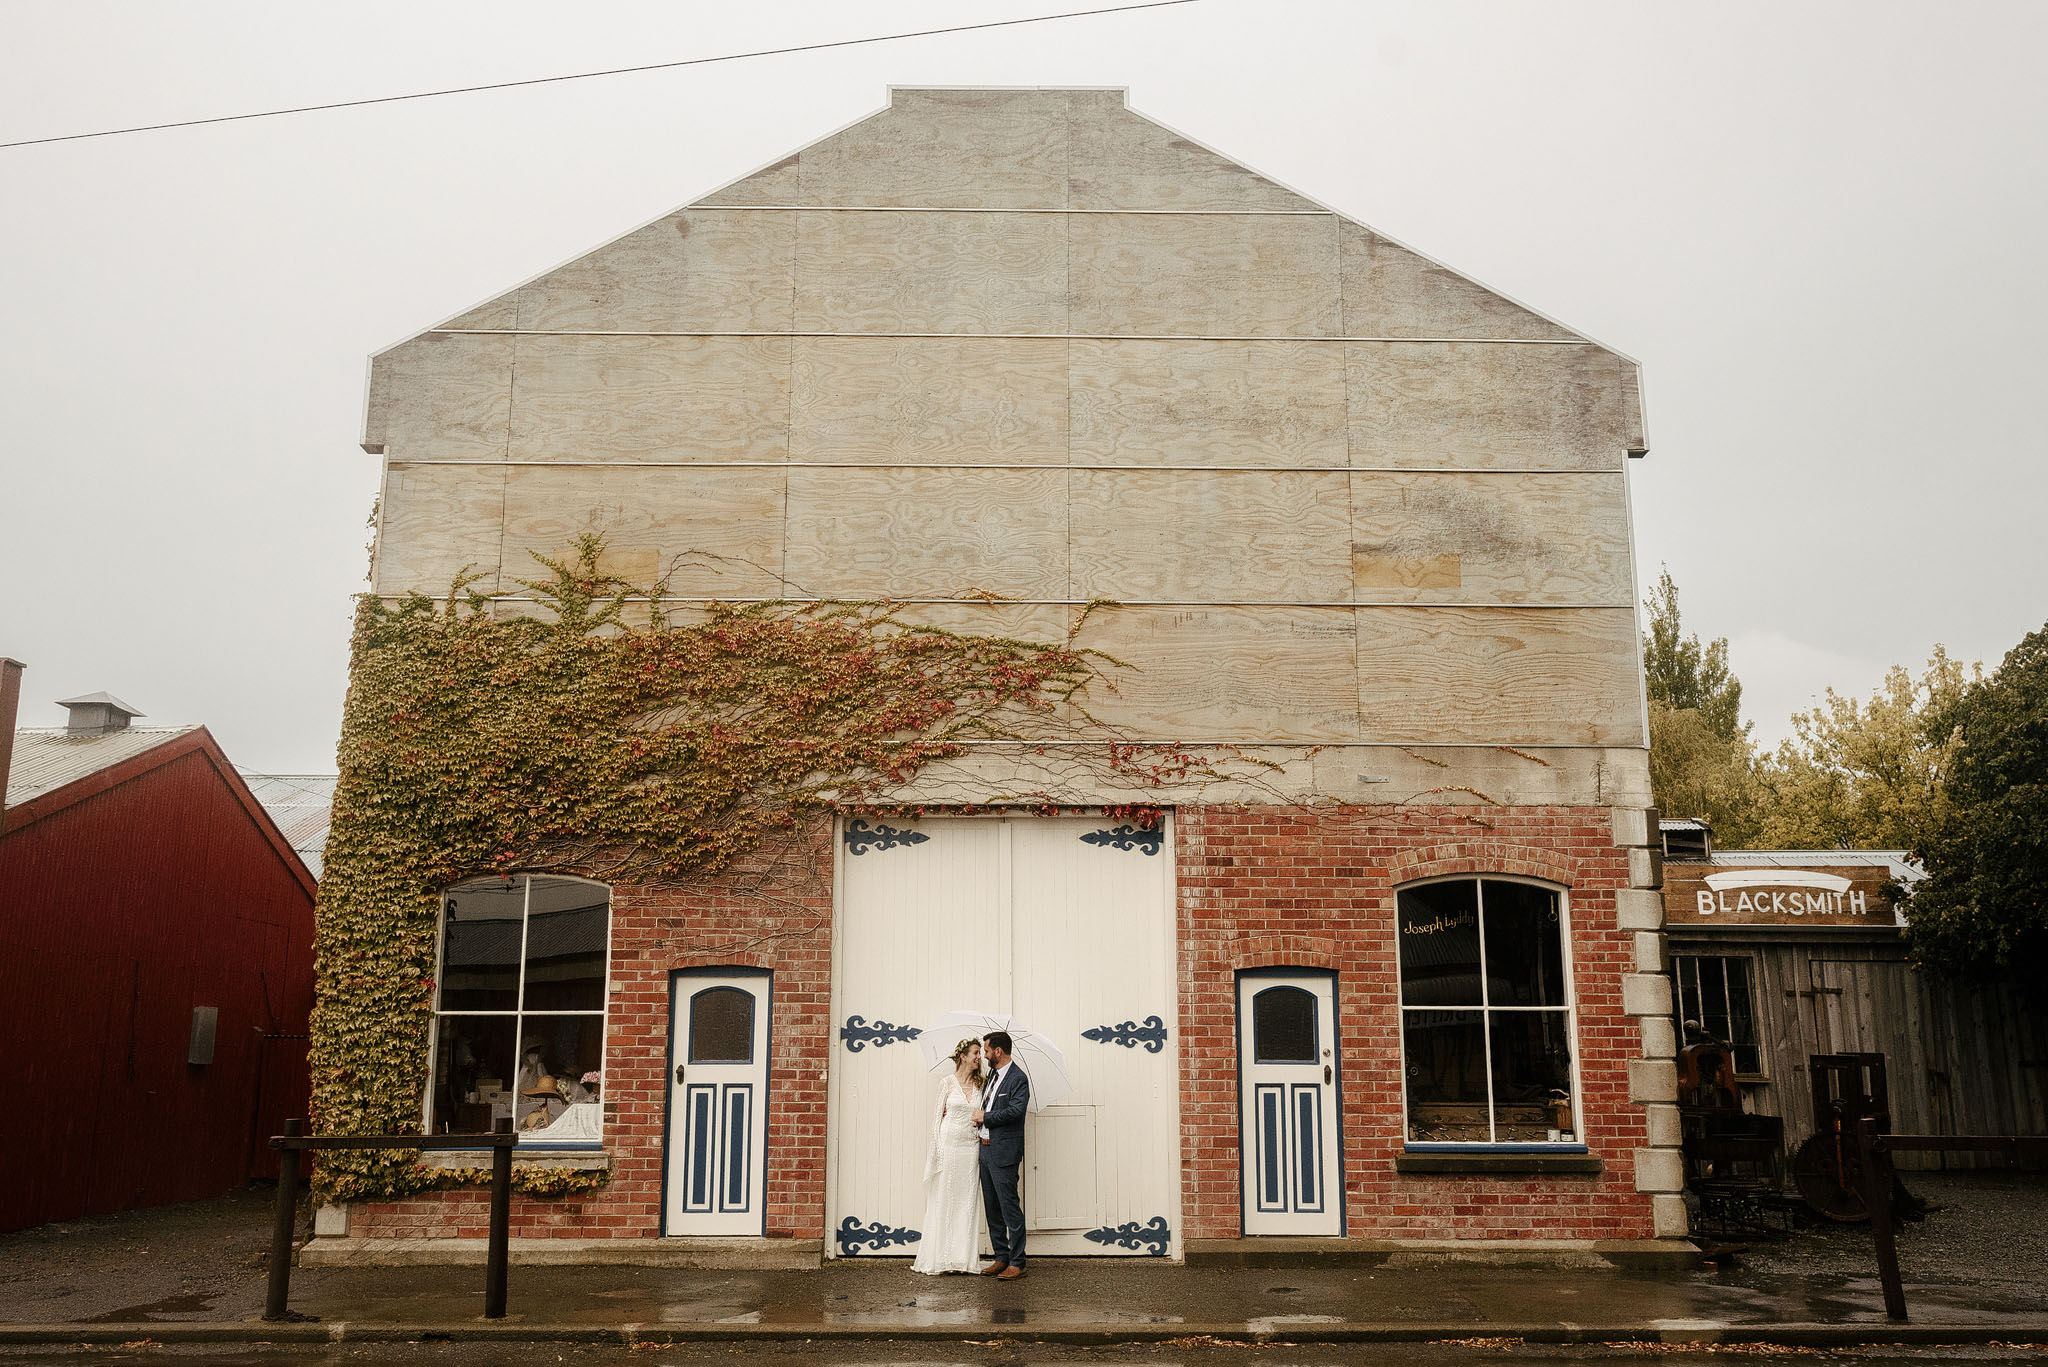 Under umbrella - rainy New Zealand wedding